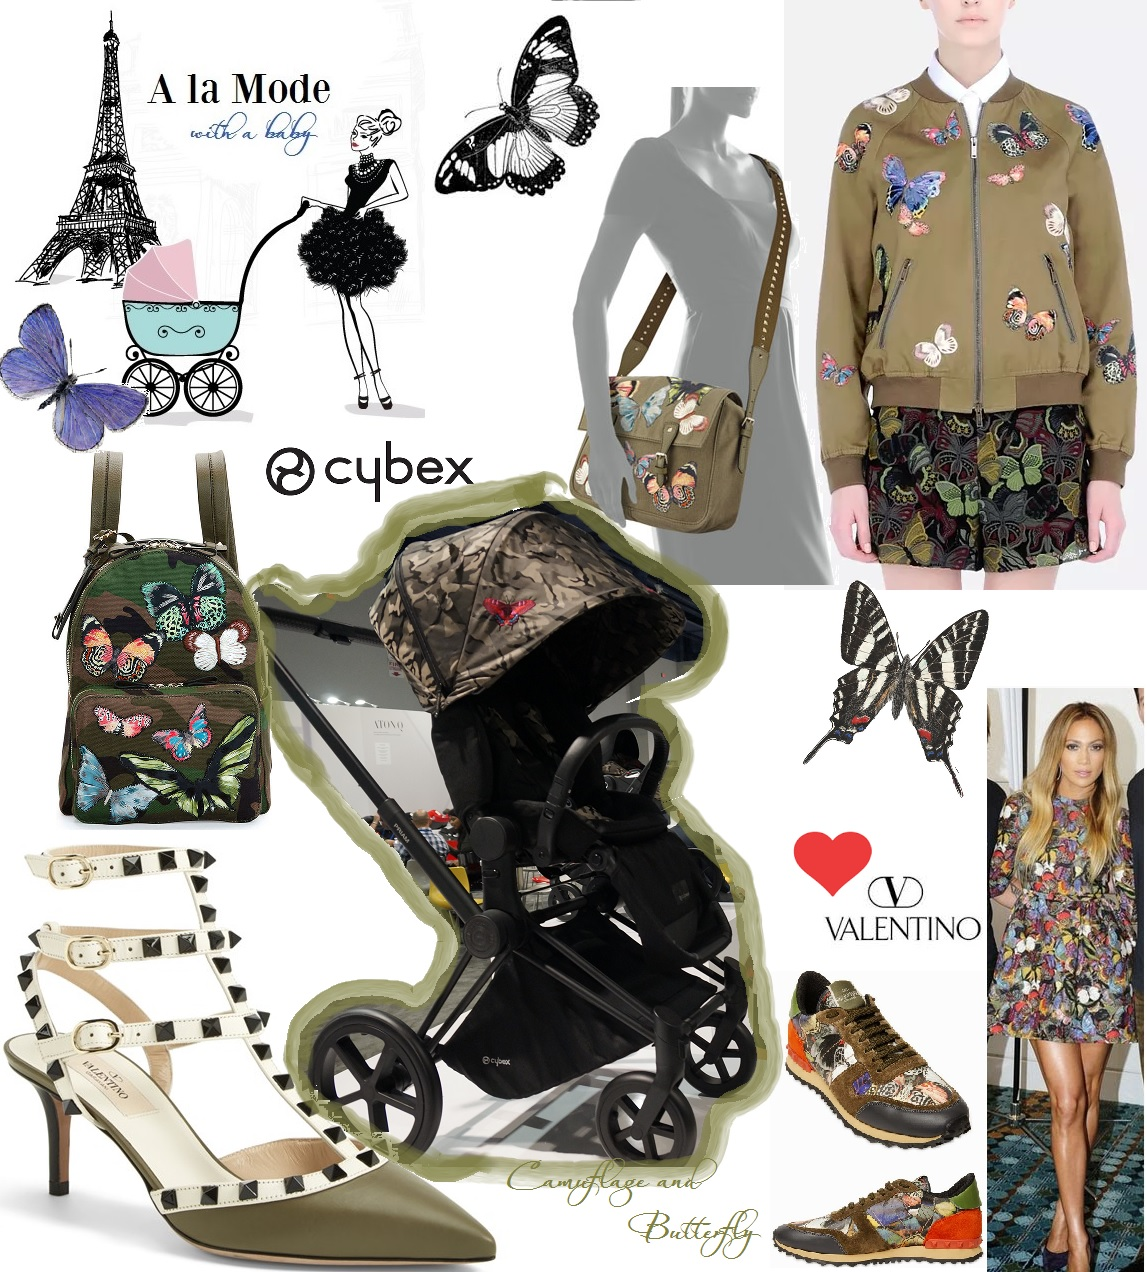 camuflage and butterfly